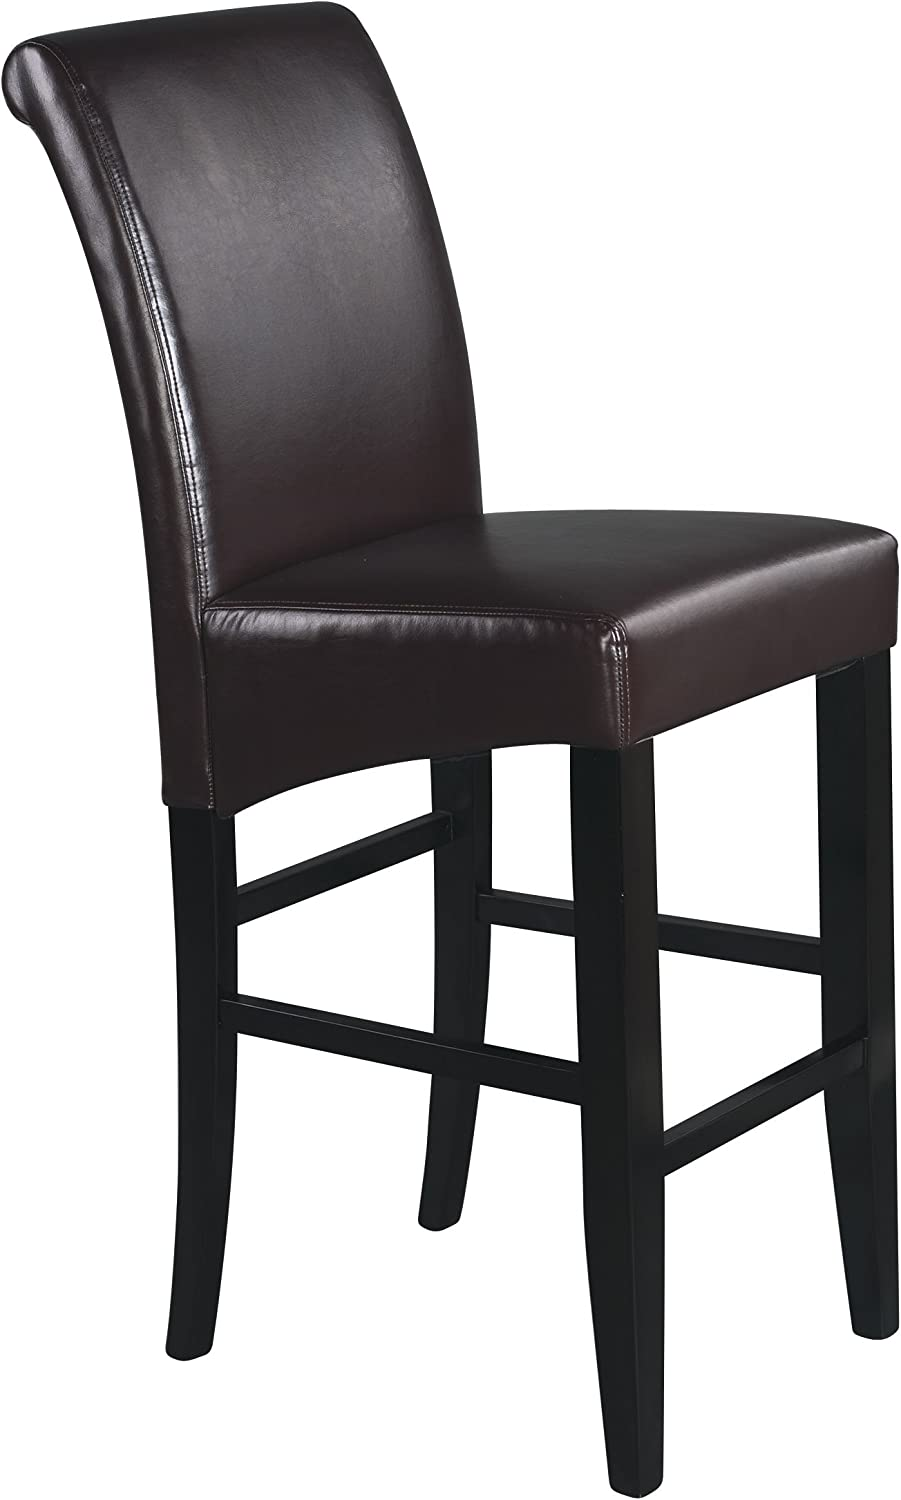 Office Star Bonded Leather 30  Tall Parson's Bar Stool with Finish Legs, Espresso